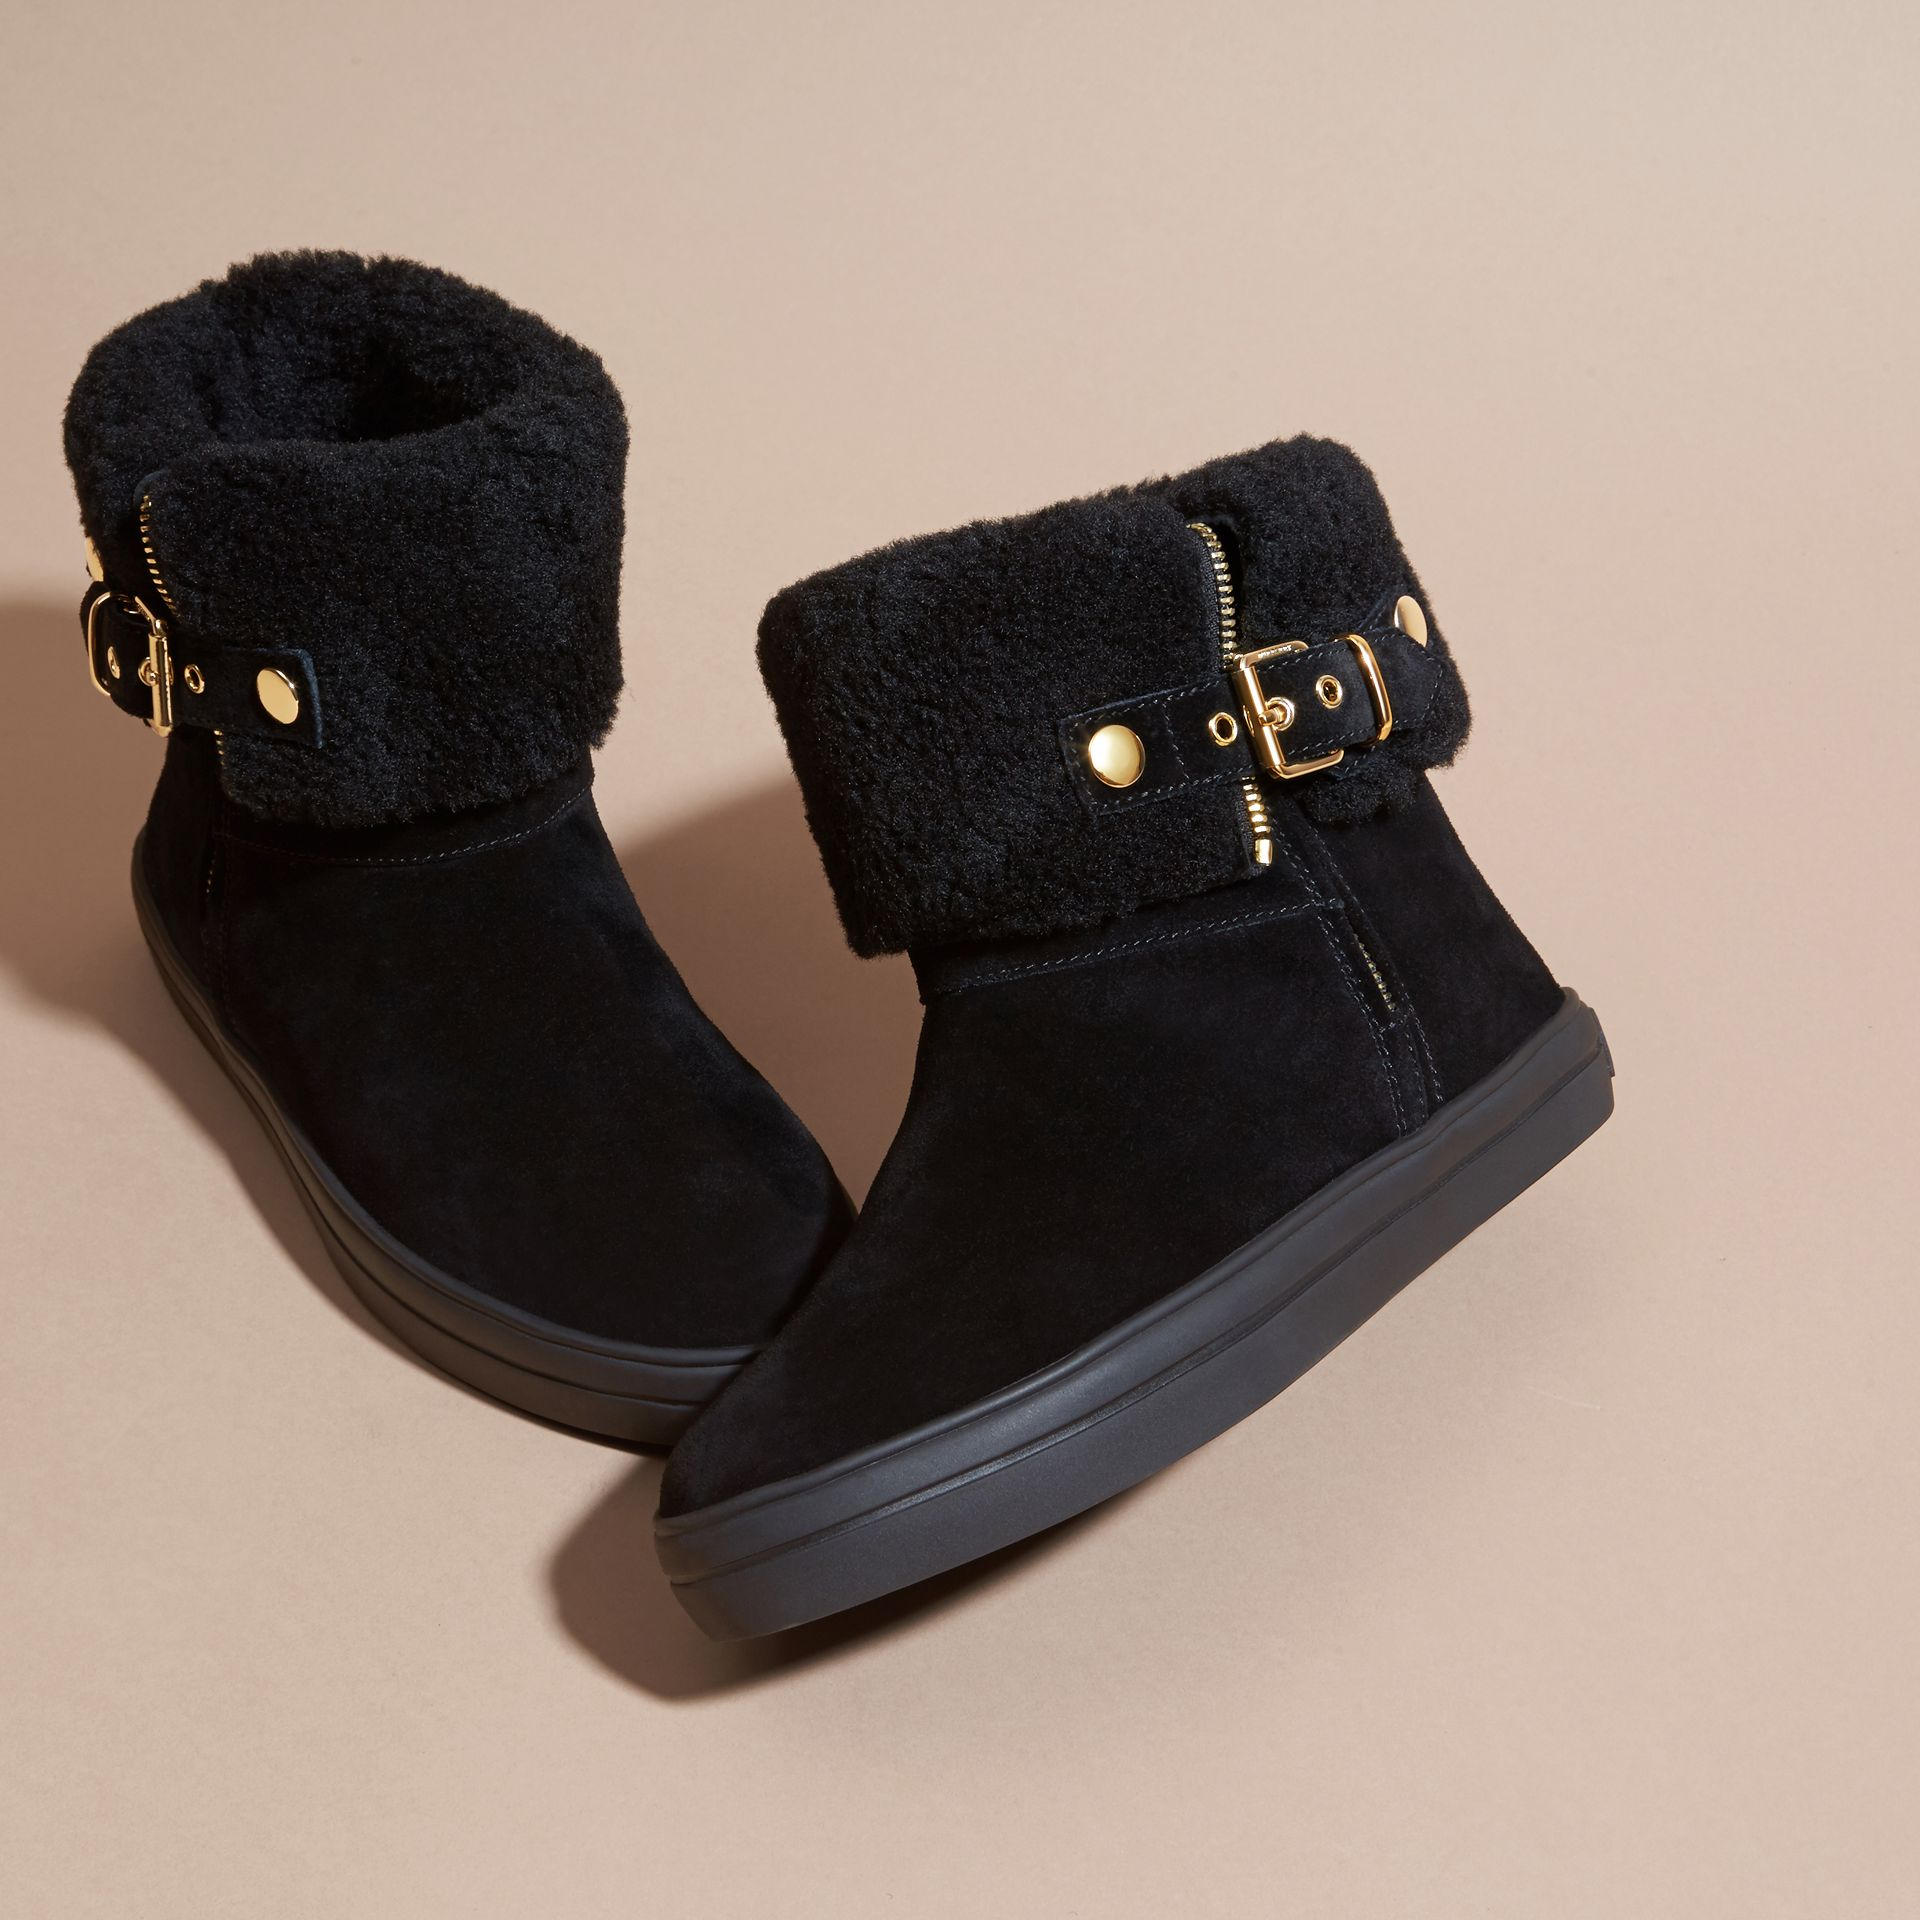 Shearling-lined Suede Ankle Boots in Black - Women | Burberry Canada - gallery image 3